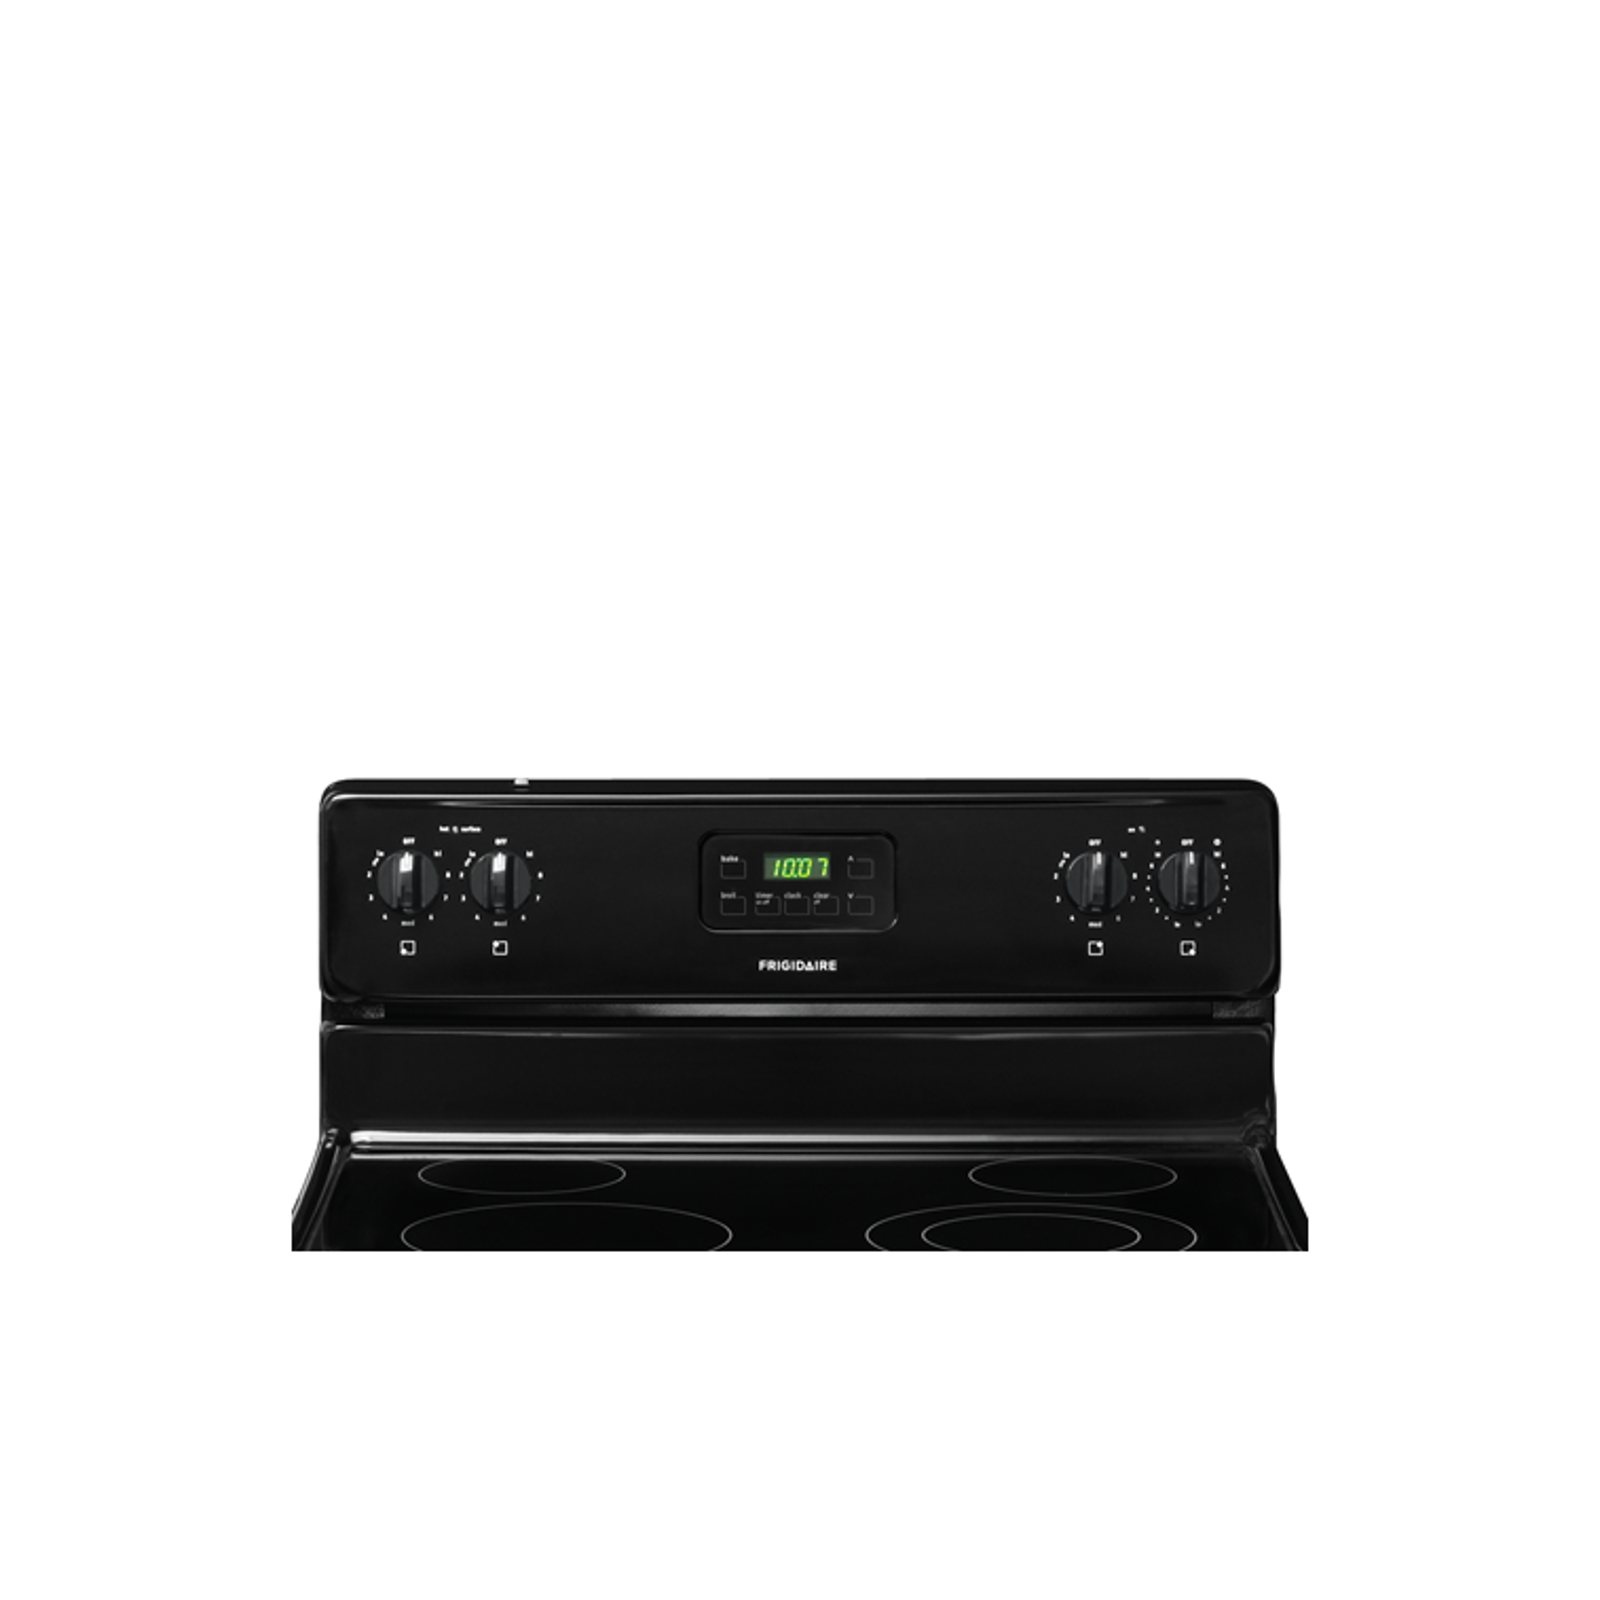 Frigidaire FFEF3013LB 4.8 cu. ft. Electric Range